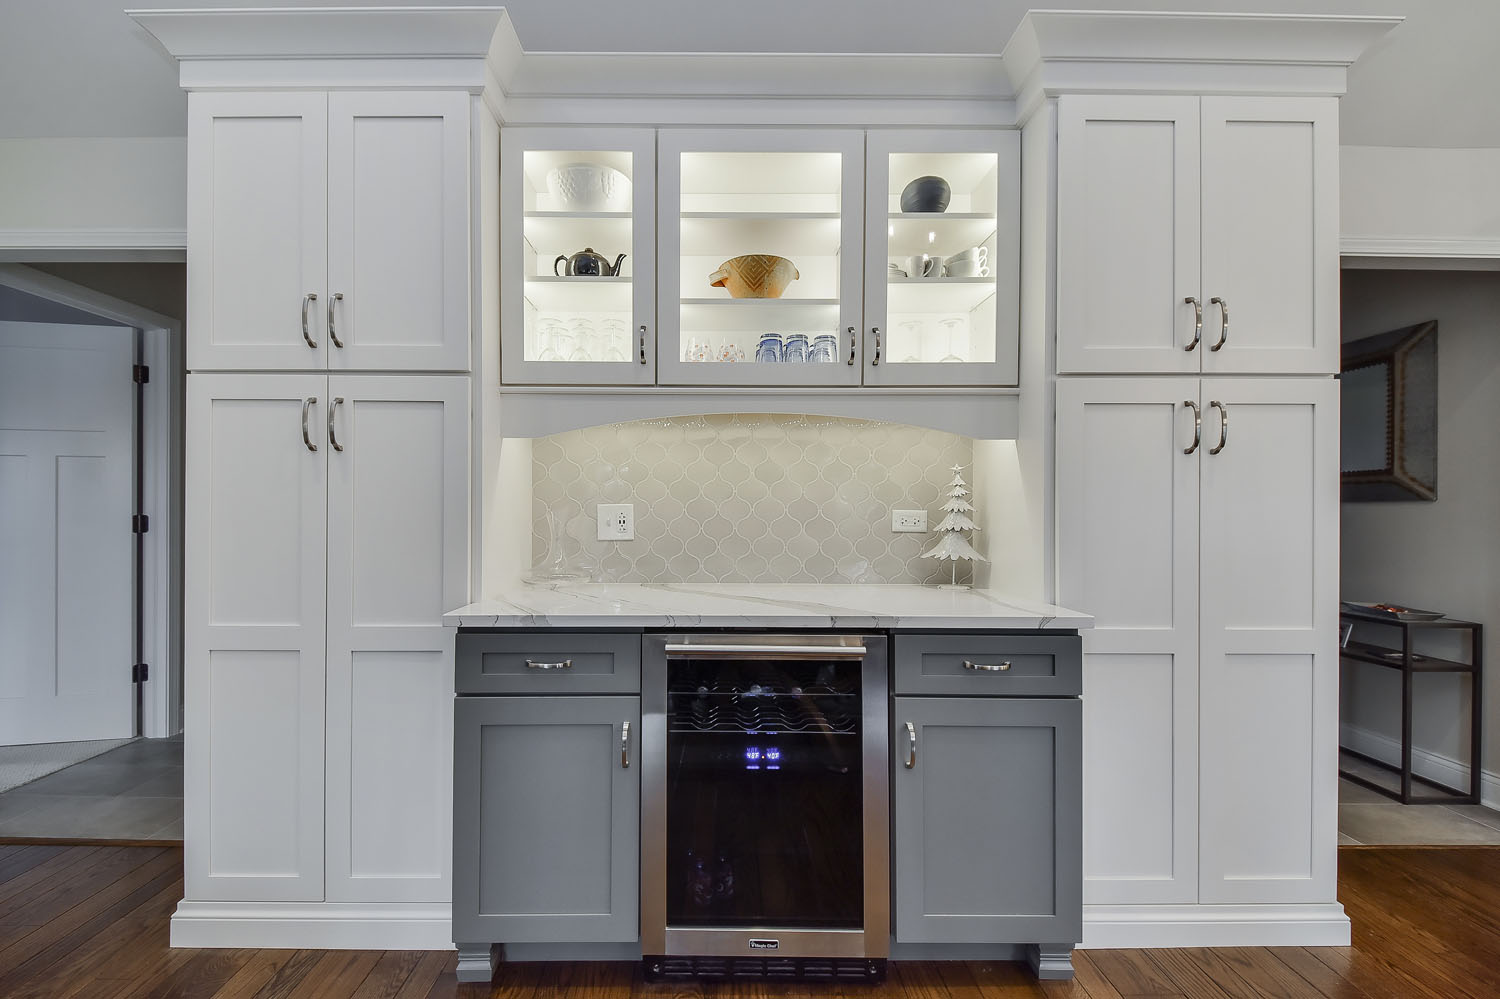 Kitchen-Bar-Lisle-IL-Illinois-SebringDesignBuild